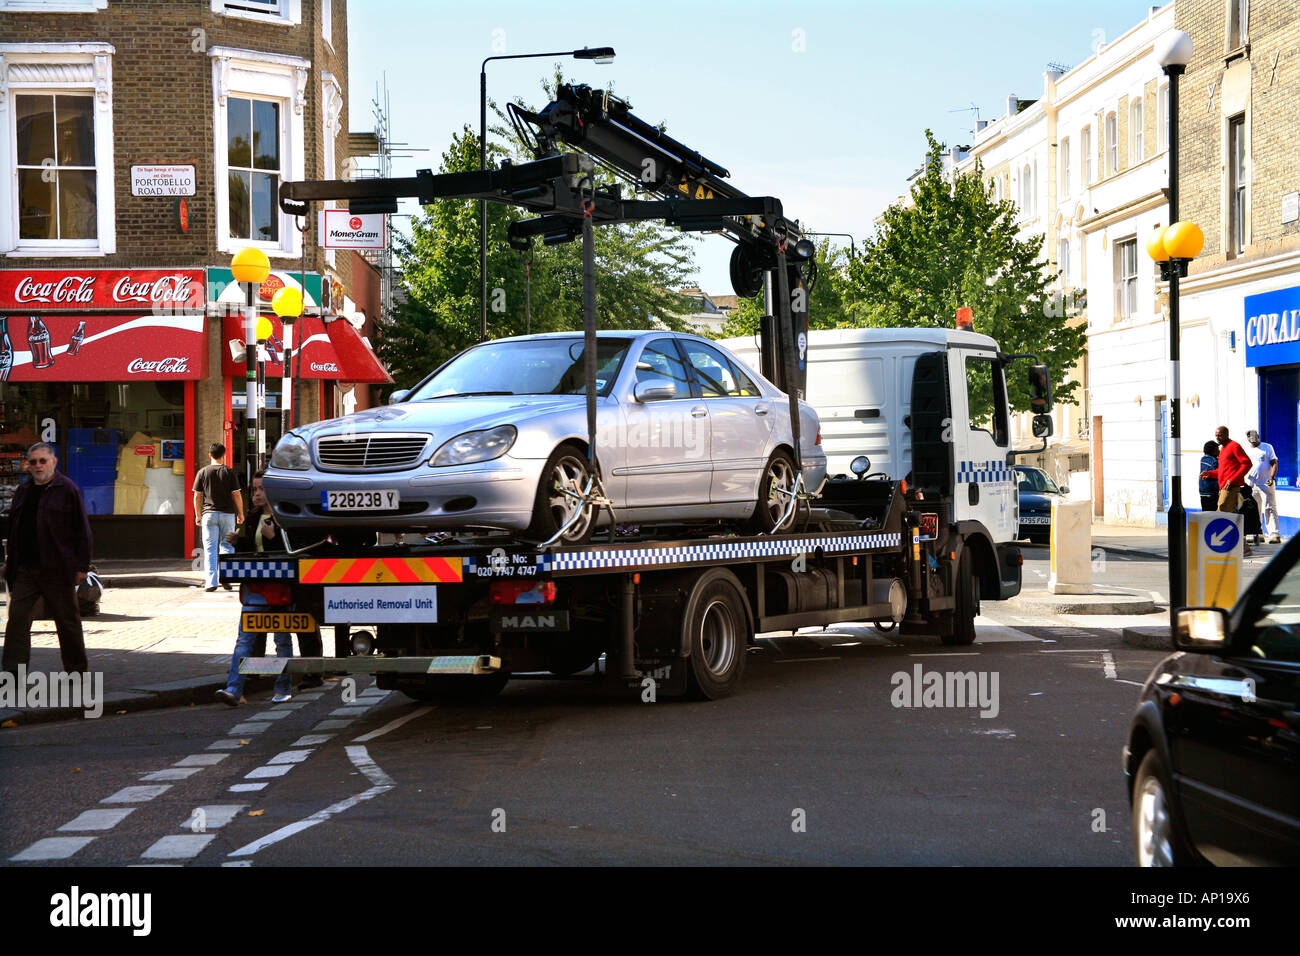 Car Removal Unit for Illegal Parking in west London - Stock Image